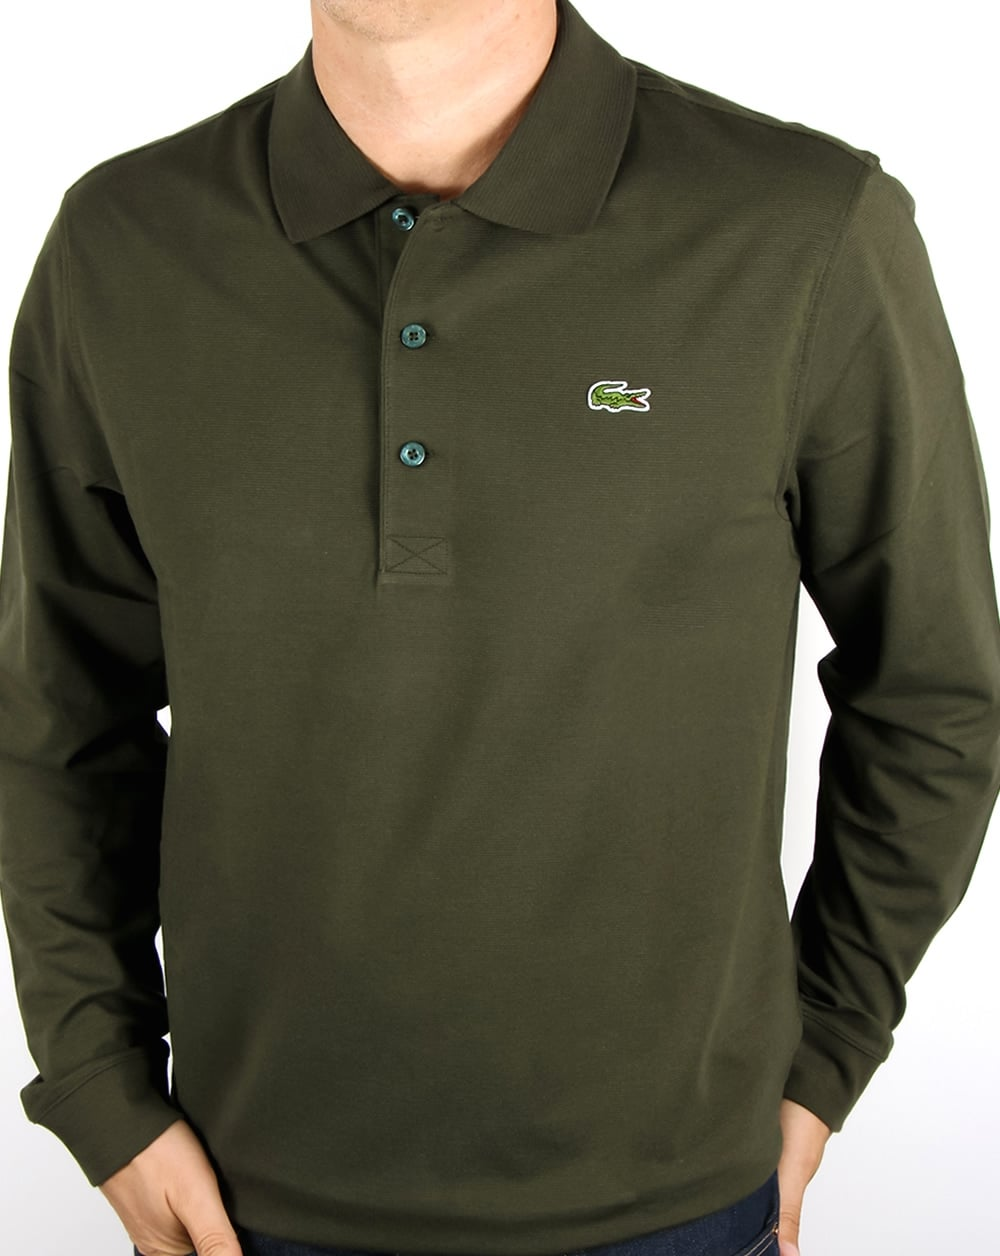 be4379159 Lacoste Lacoste Long Sleeve Polo Khaki Green